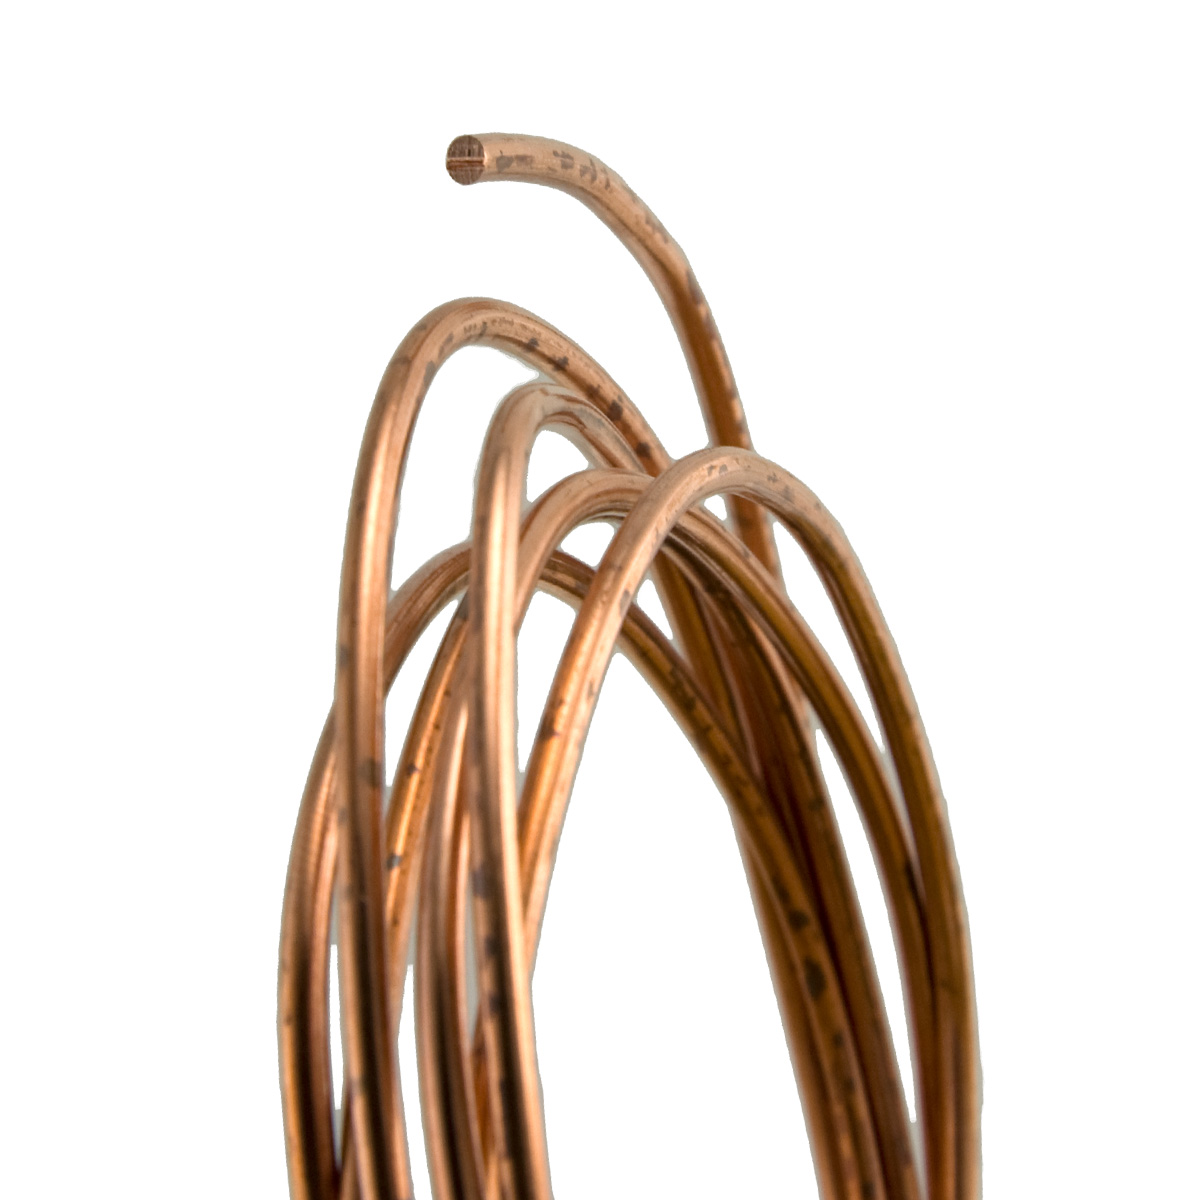 14 Gauge Round Dead Soft Copper Wire